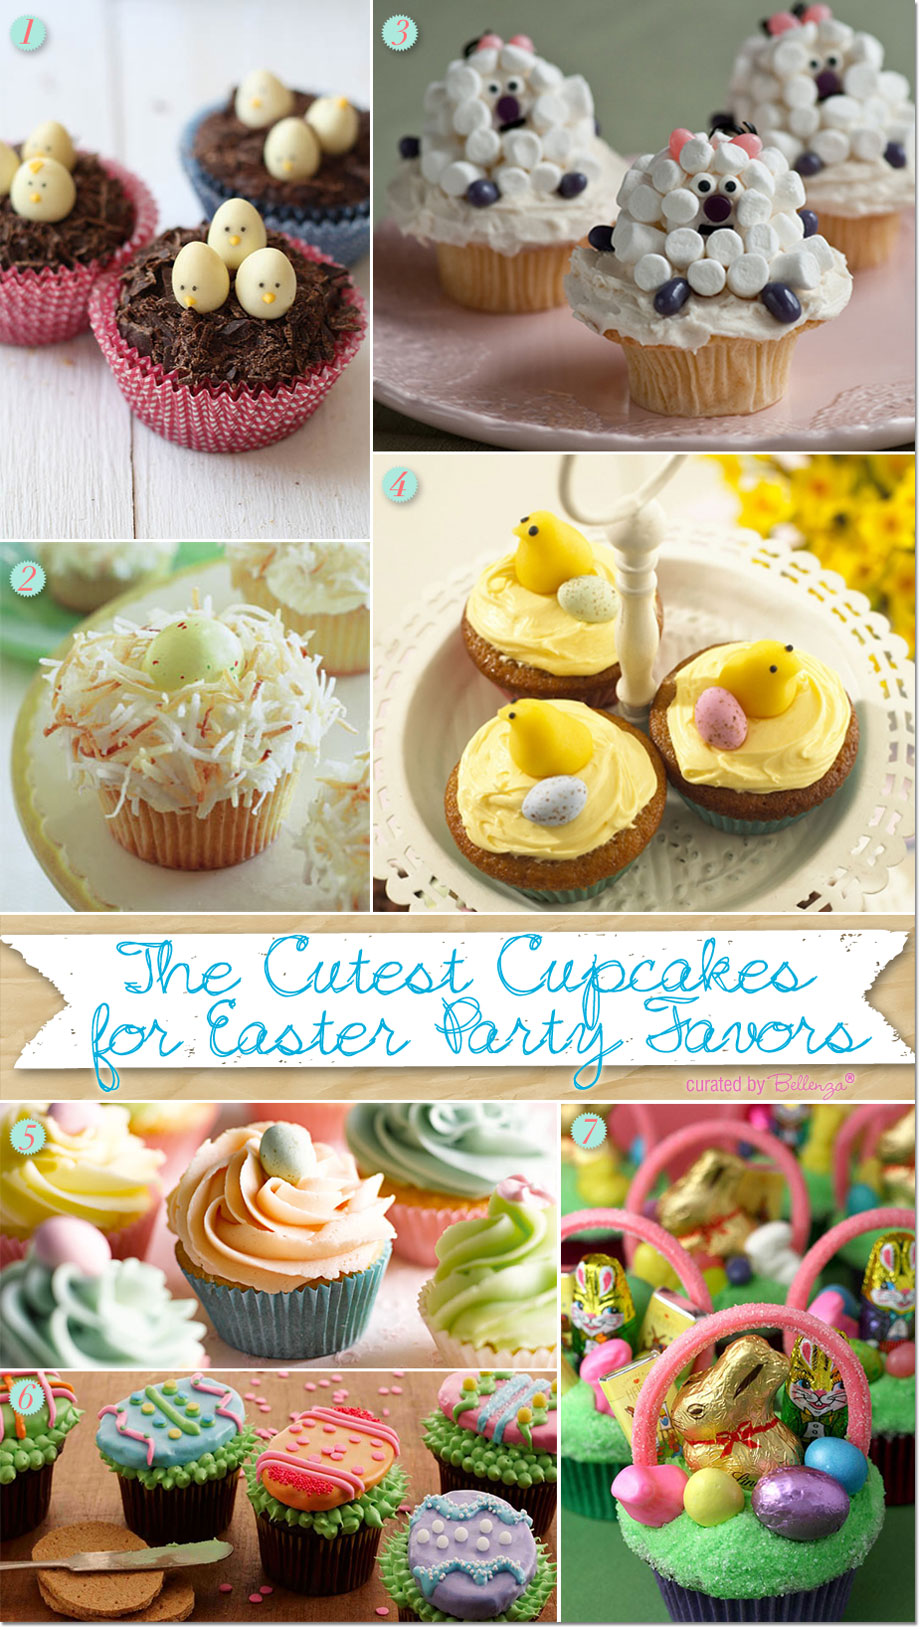 Fun Easter Cupcakes for Kids with Chicks, Eggs, and Bunnies.